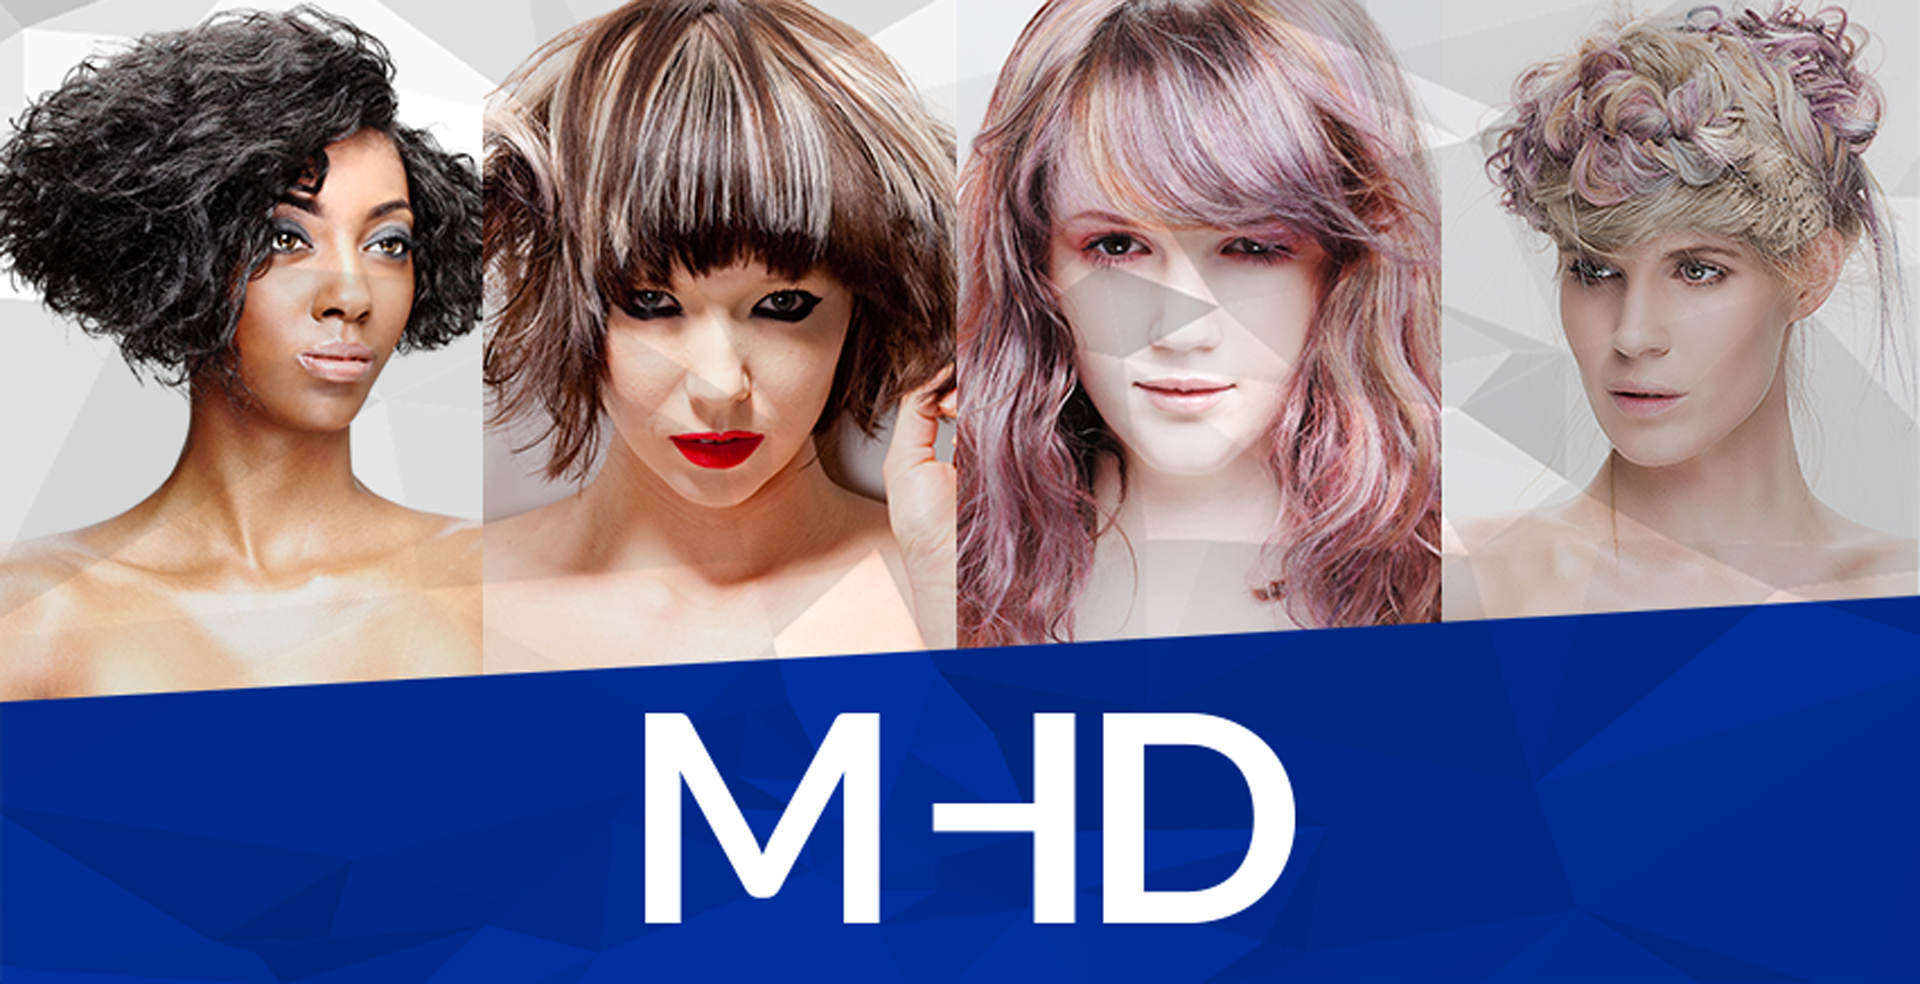 Hairdressing Training Videos  Barbering Tutorials  MHD